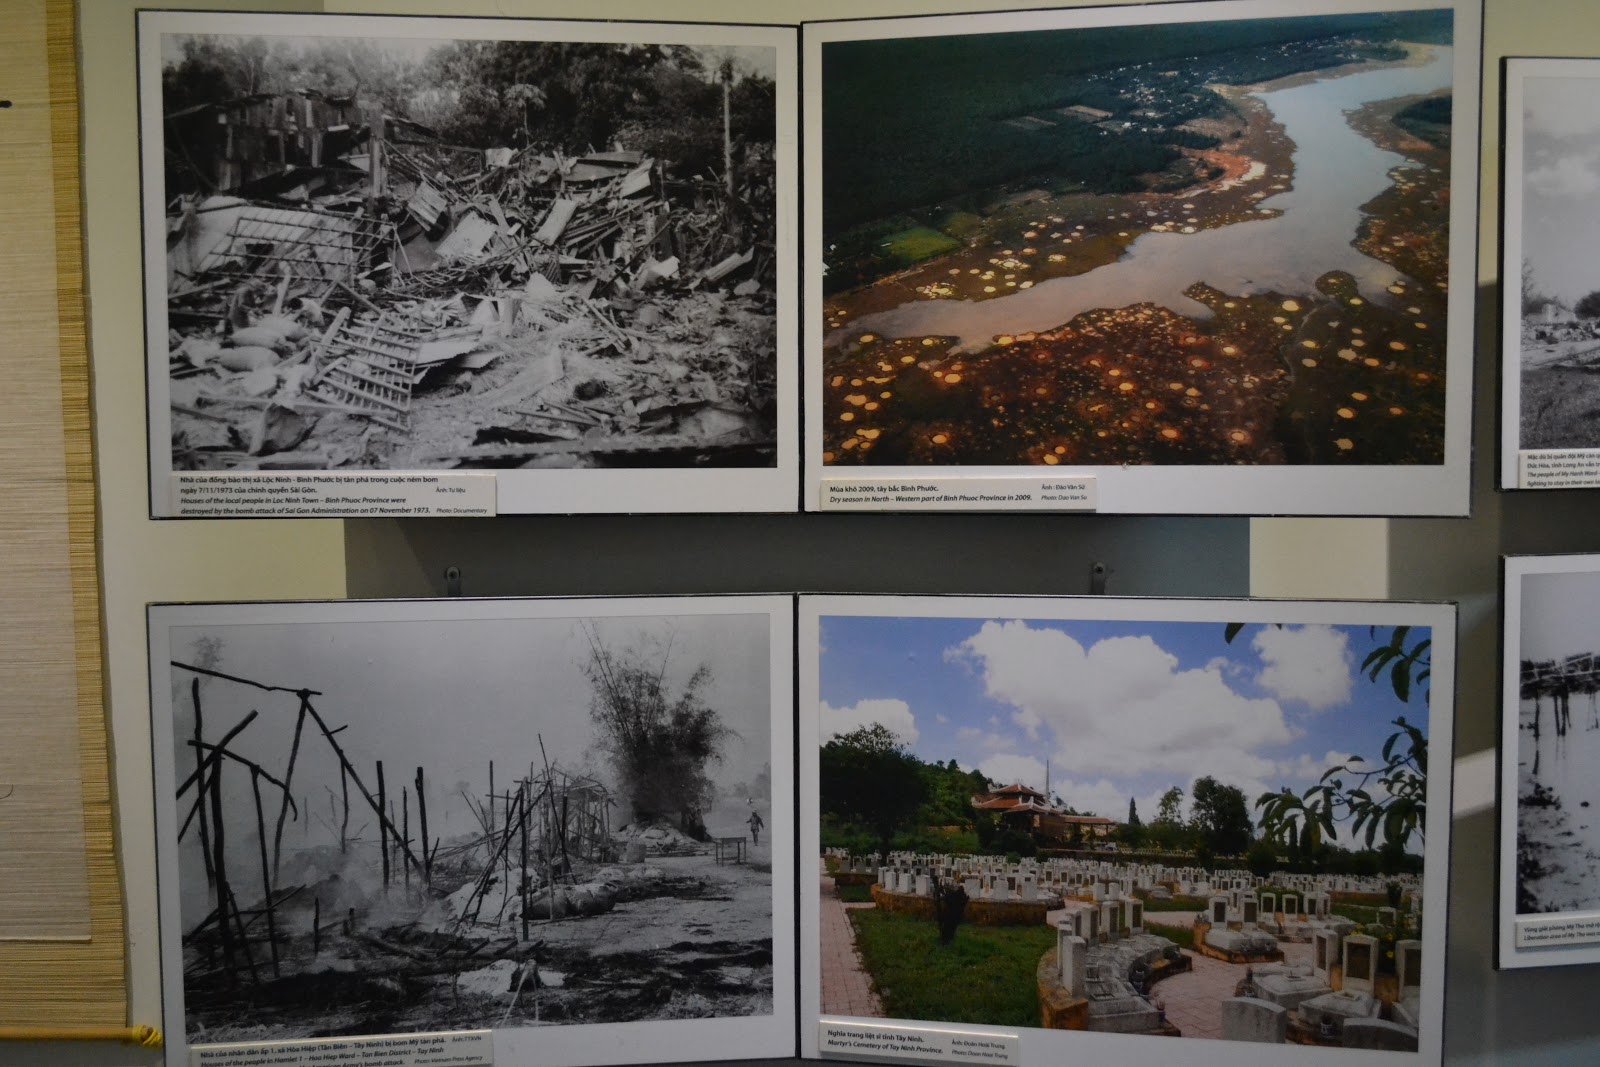 ection displaying picture of war ravaged cities and contemporary pictures side by side